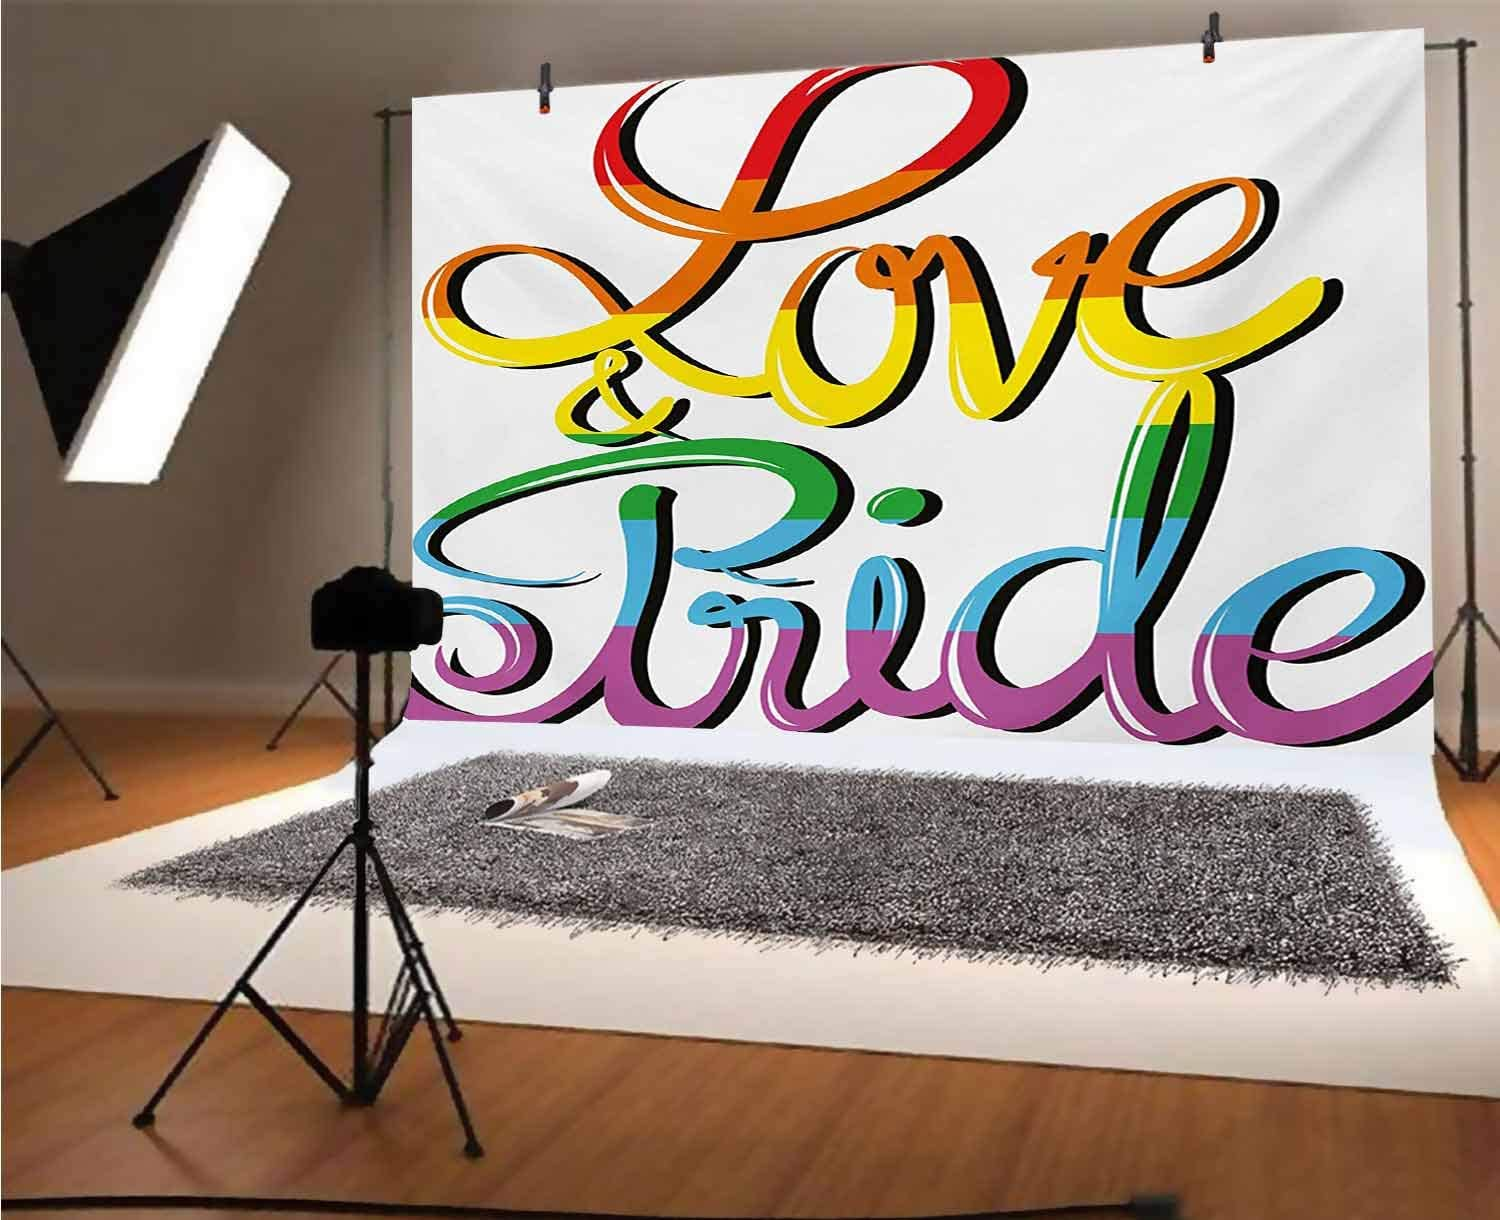 Pride 15x10 FT Vinyl Photo Backdrops,Love and Pride Text Design Stylized Lettering Calligraphy Rainbow Colors Valentines Background for Child Baby Shower Photo Studio Prop Photobooth Photoshoot